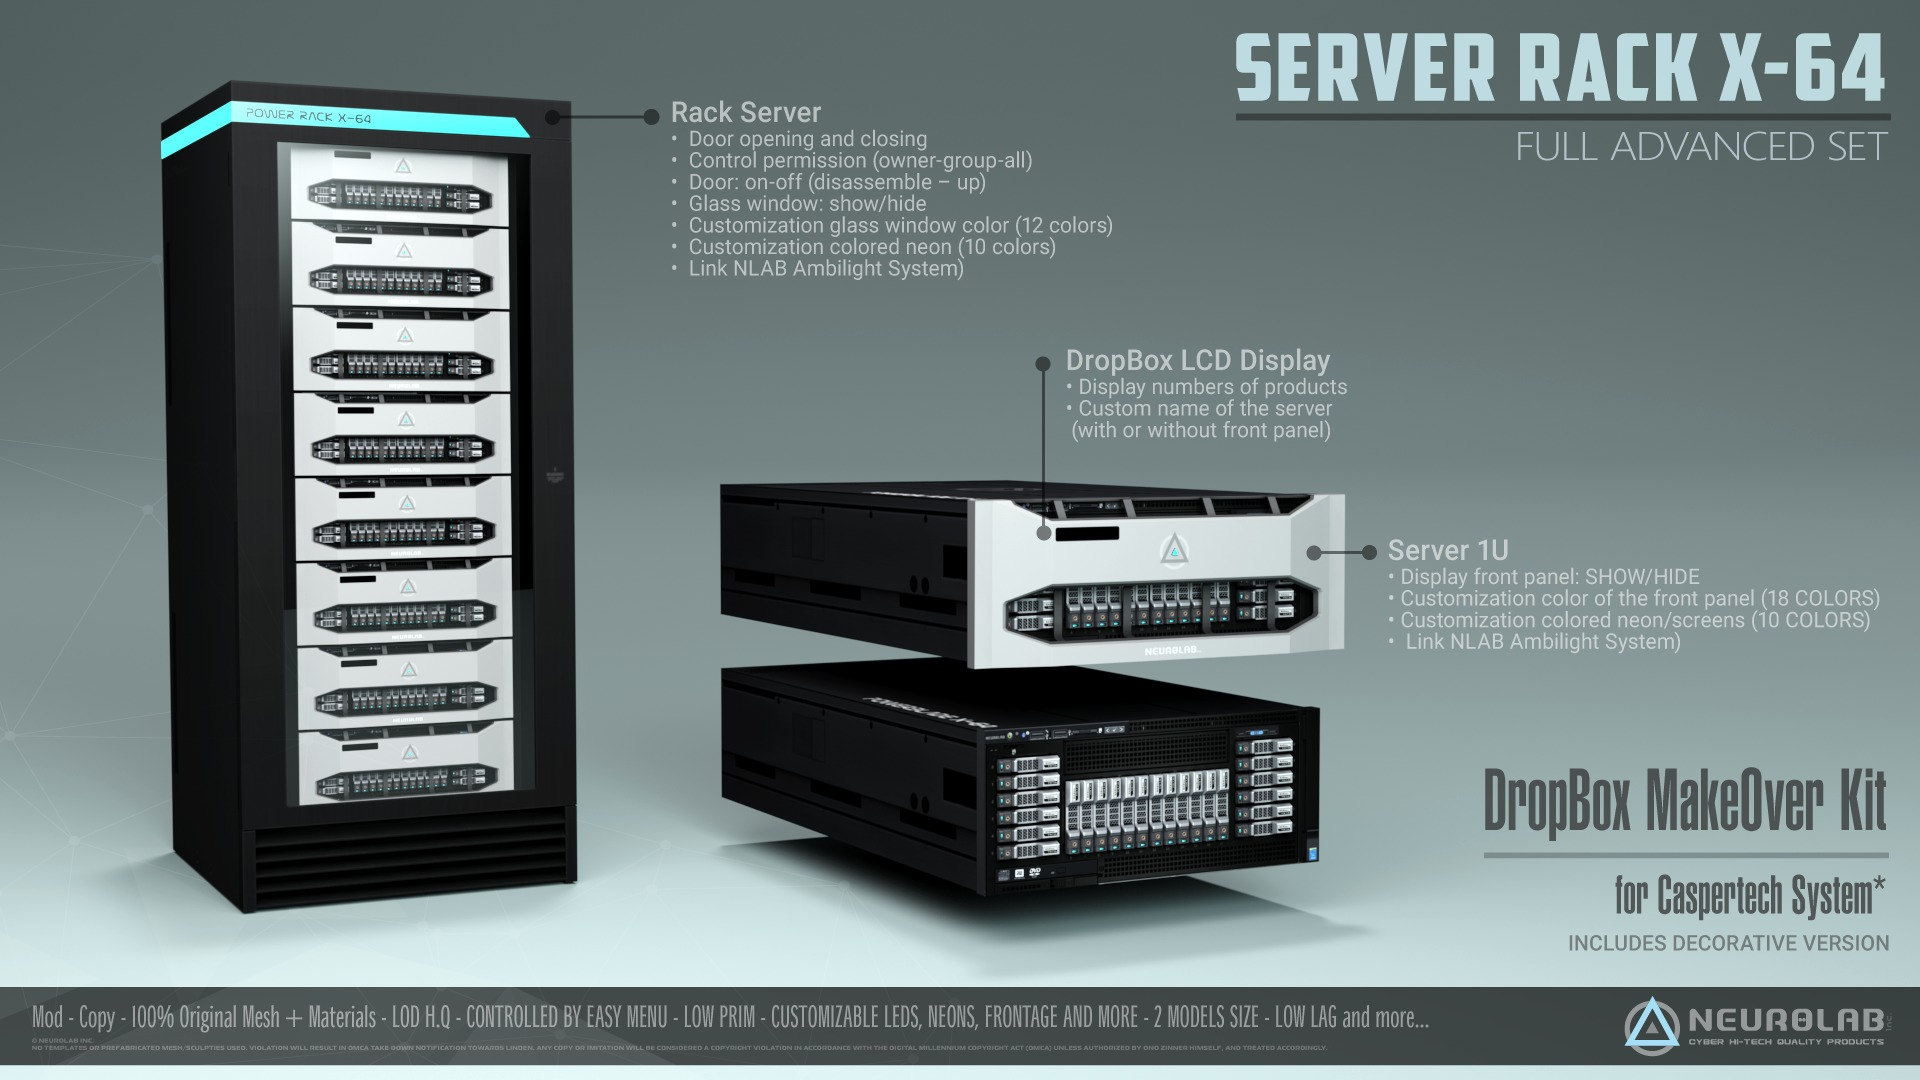 Server and Racks X-64 (Full Set Caspertech Dropbox)